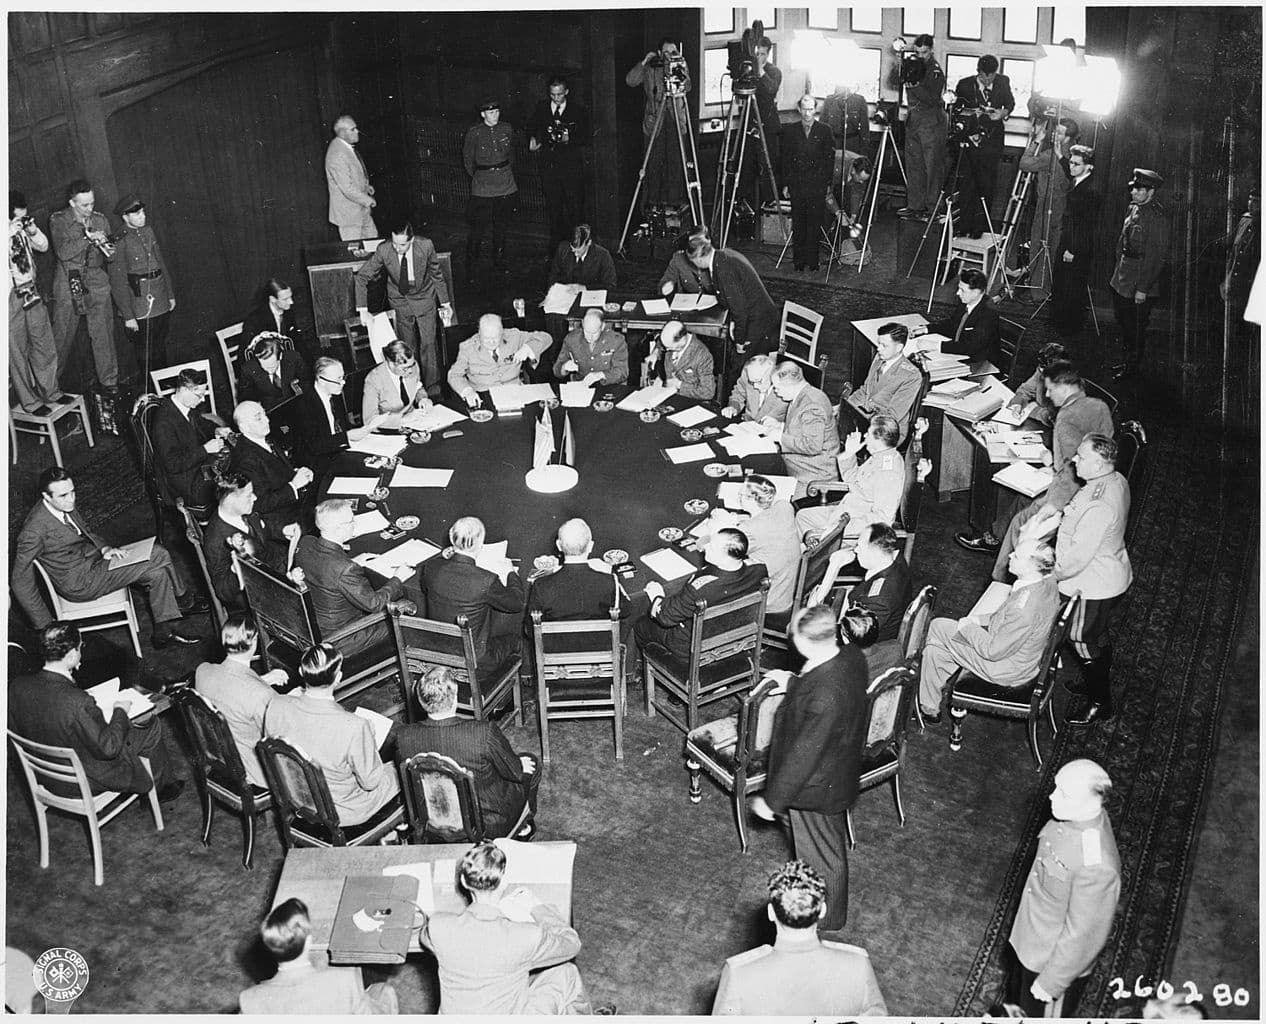 The Potsdam Conference - July 18th 1945 - The second plenary session of the Potsdam Conference begins on July 18th 1945